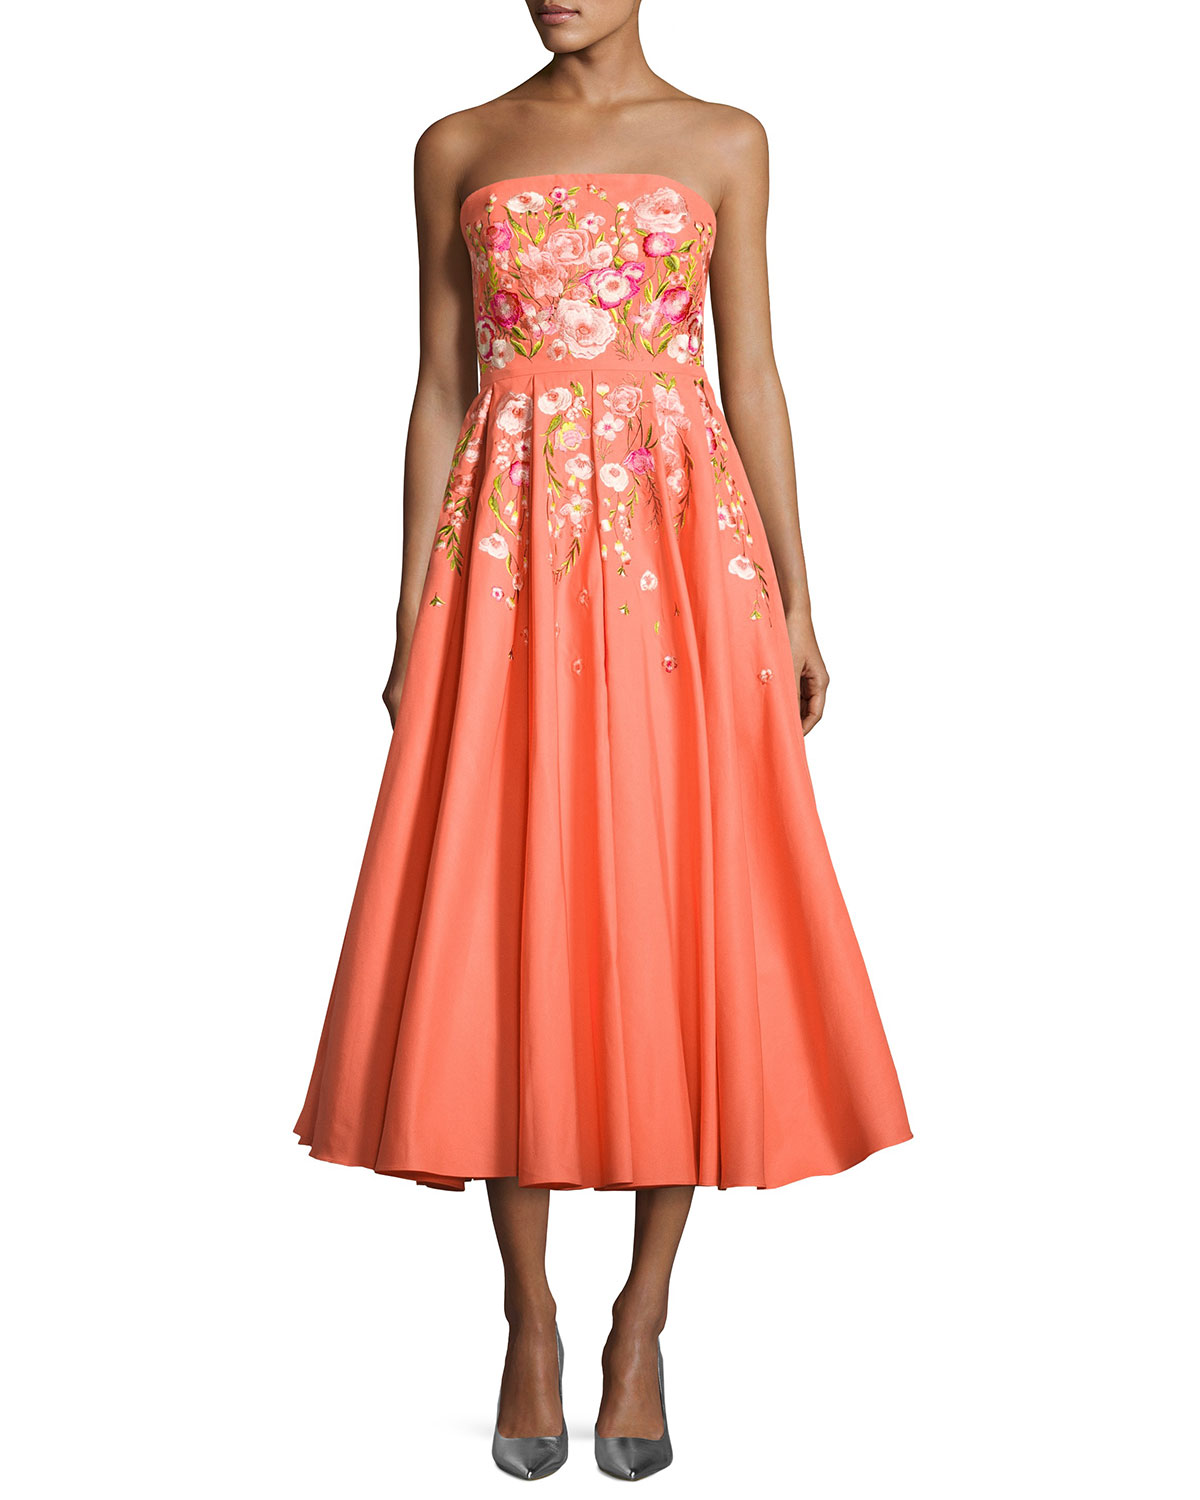 aa3b326c Marchesa Notte Strapless Embroidered Faille Tea-Length Gown, Coral ...